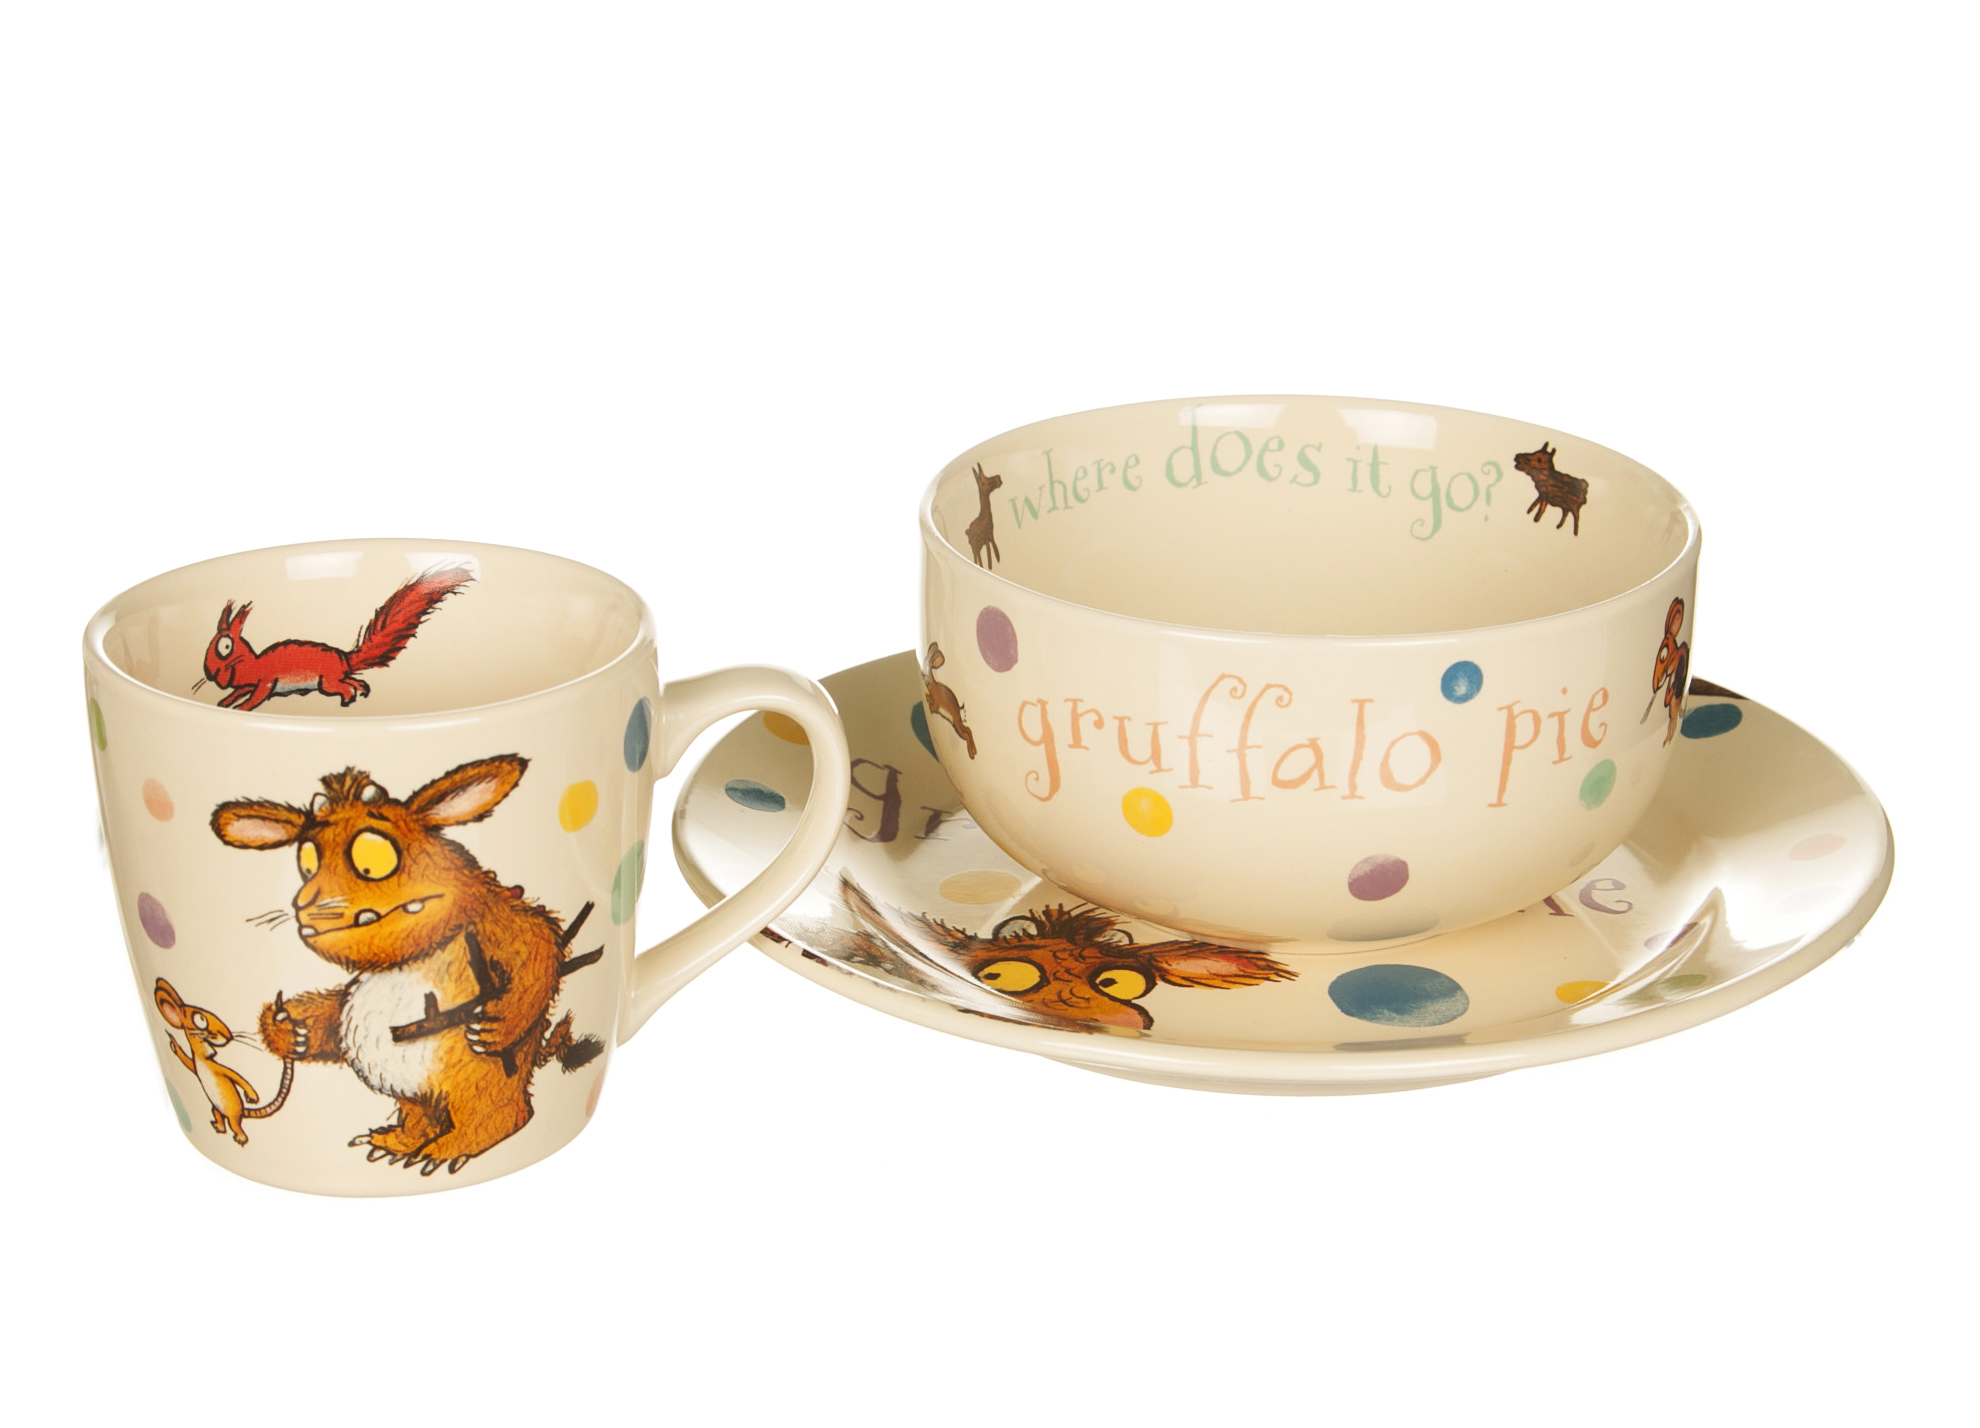 Gruffalo Child 3-Piece Spotty Ceramic Set With